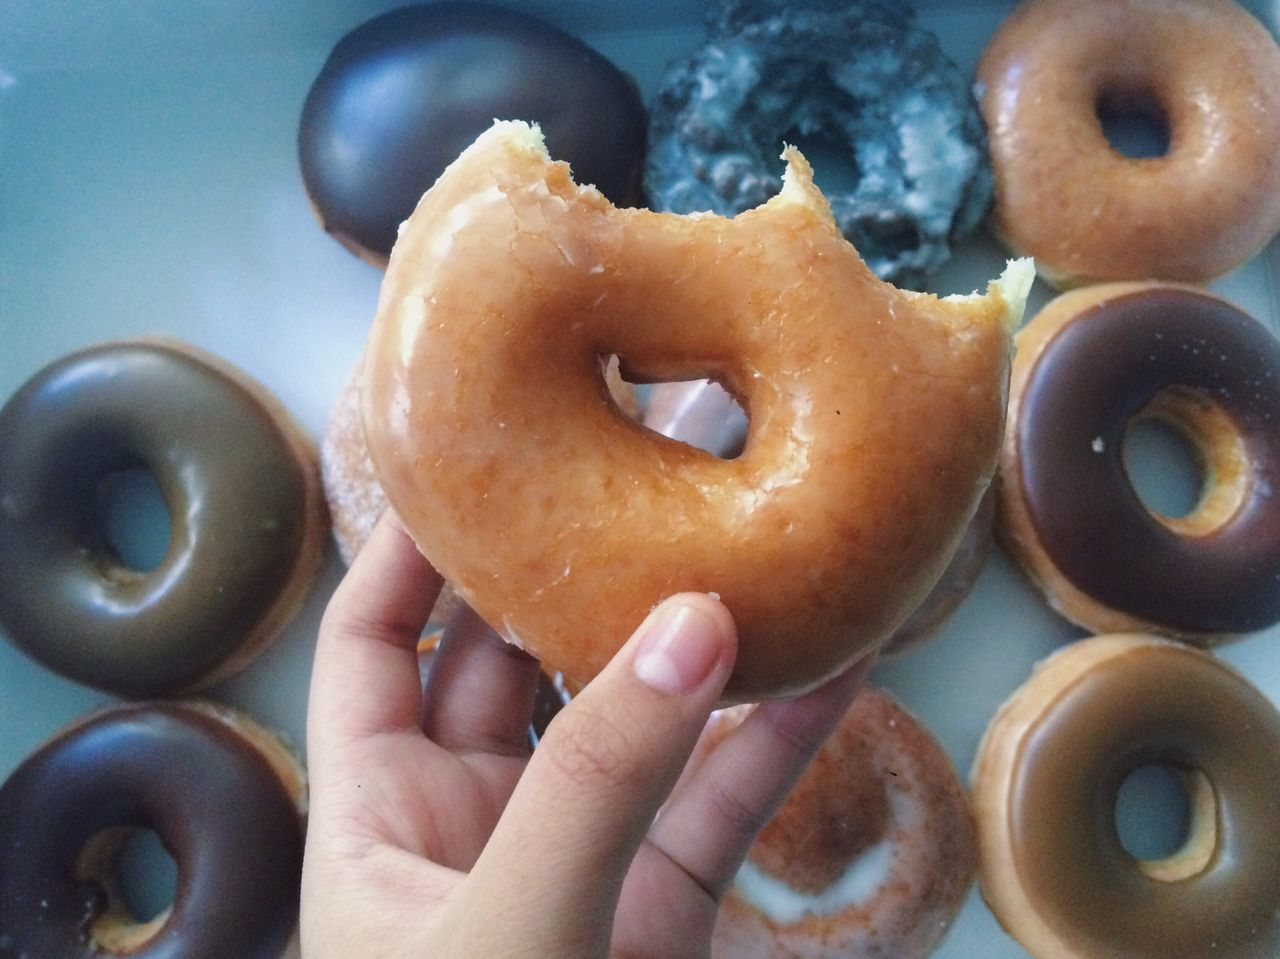 food and drink, human hand, food, freshness, indoors, holding, human body part, one person, indulgence, donut, close-up, sweet food, ready-to-eat, unhealthy eating, real people, day, people